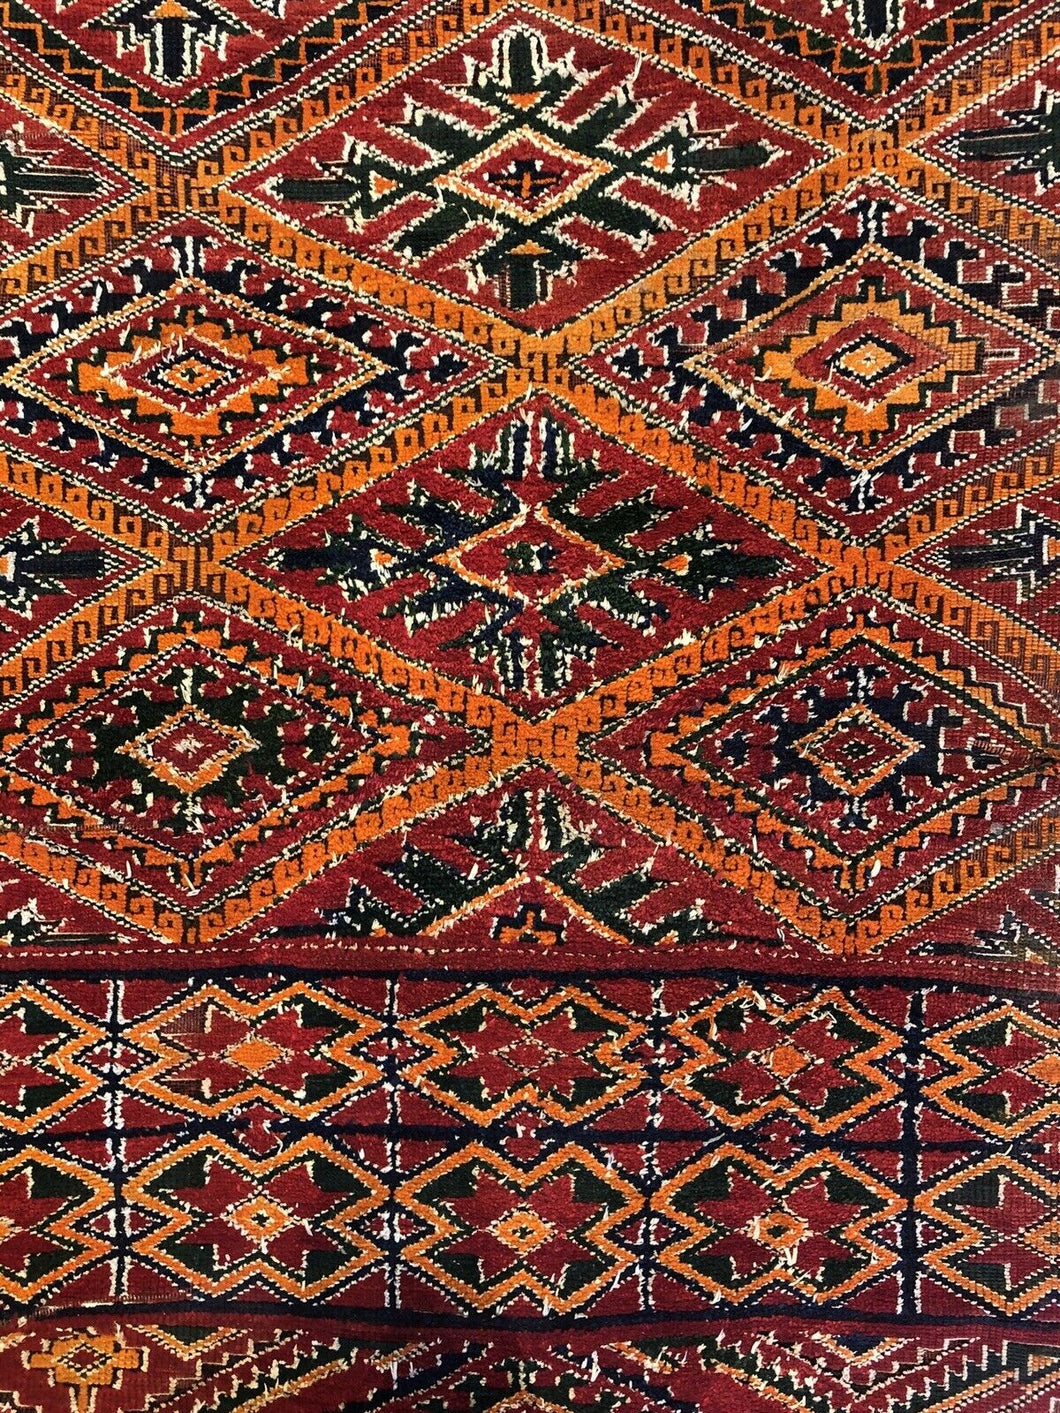 Maghreb Moroccan - 1920s Antique Tribal Rug - Pre World War 1 - 6'3